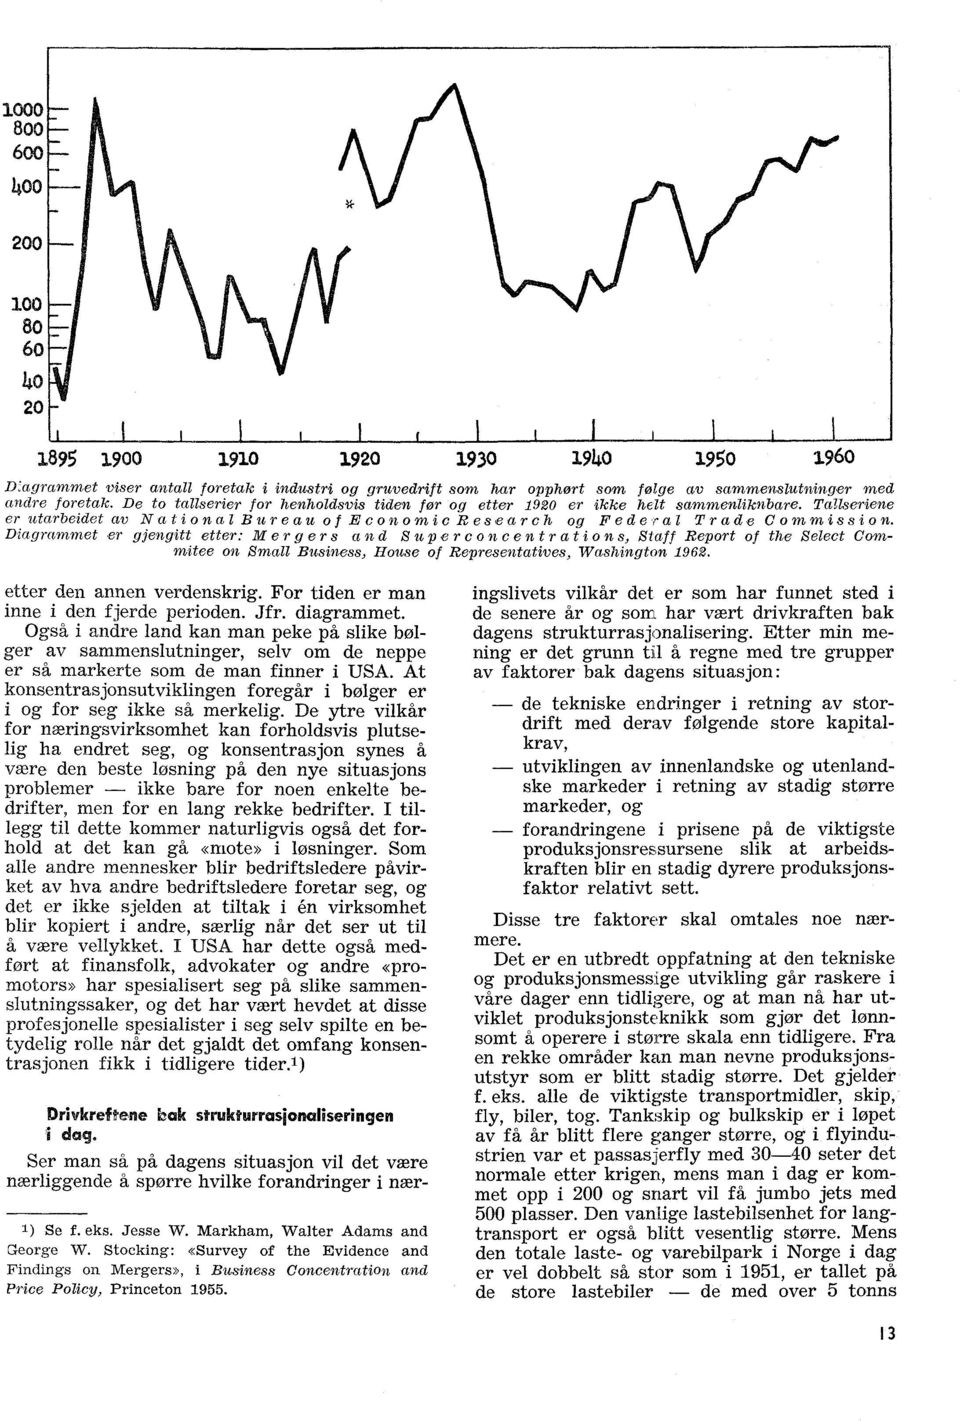 Diagrammet er gjengitt etter: Mergers and Superconeentration s, Staff Report of the Select Commitee on Small Business, House of Representatives, Washington 1962. etter den annen verdenskrig.